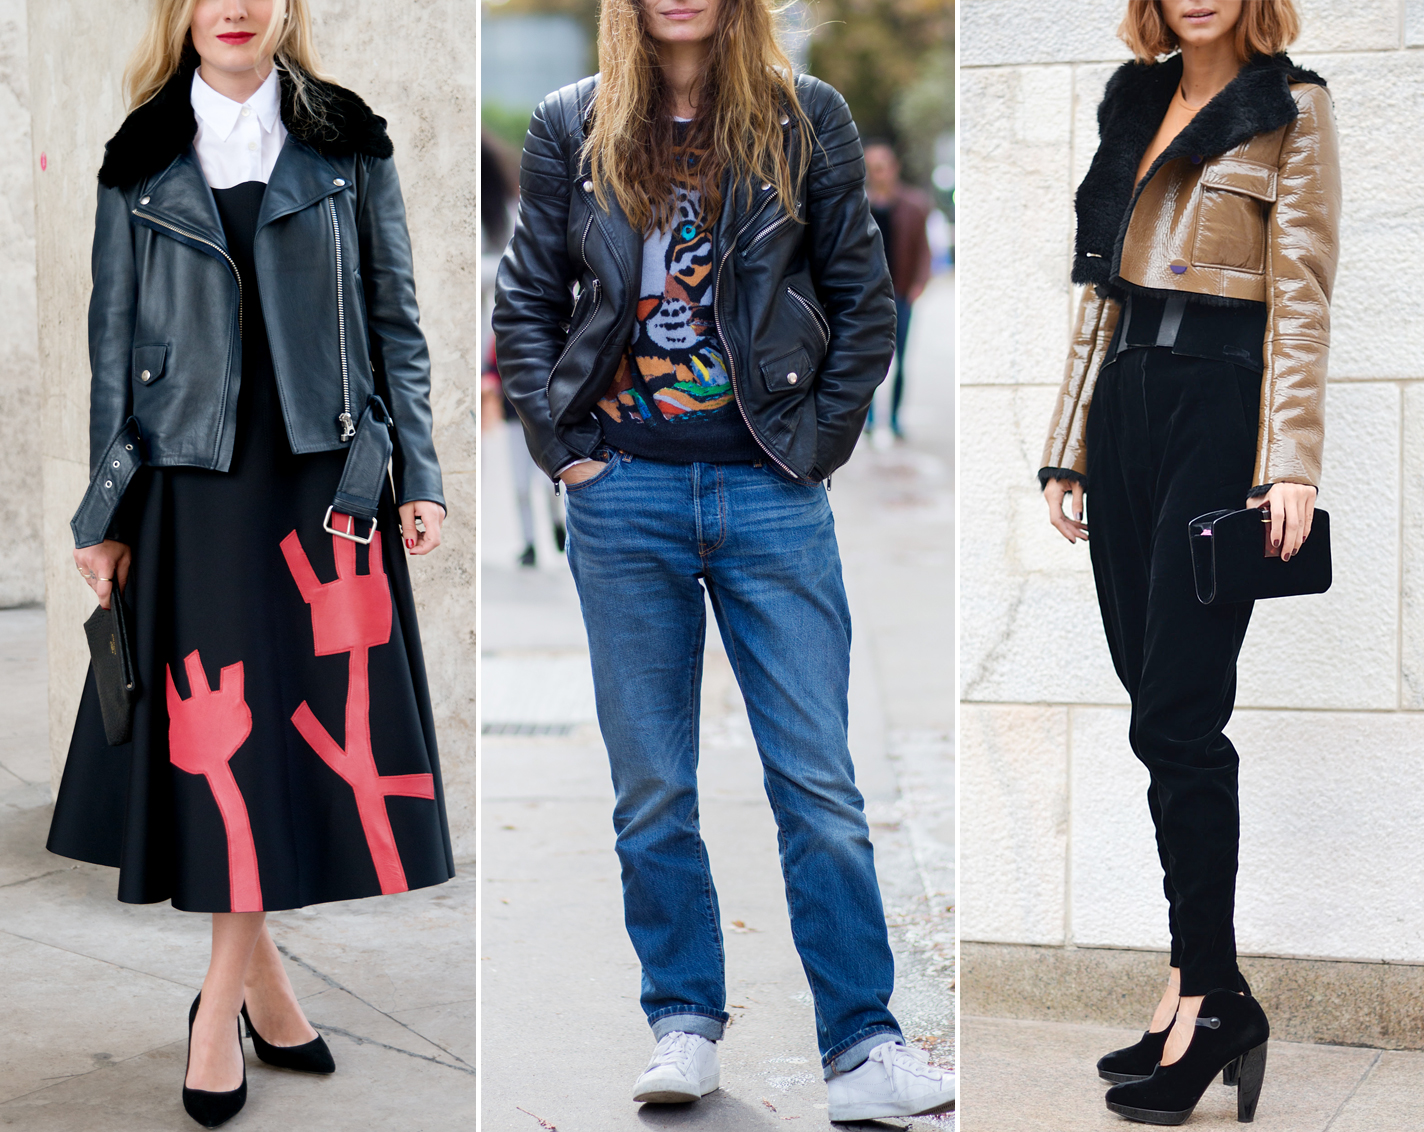 ae21588740 8 Intriguing Ways to Wear a Leather Jacket